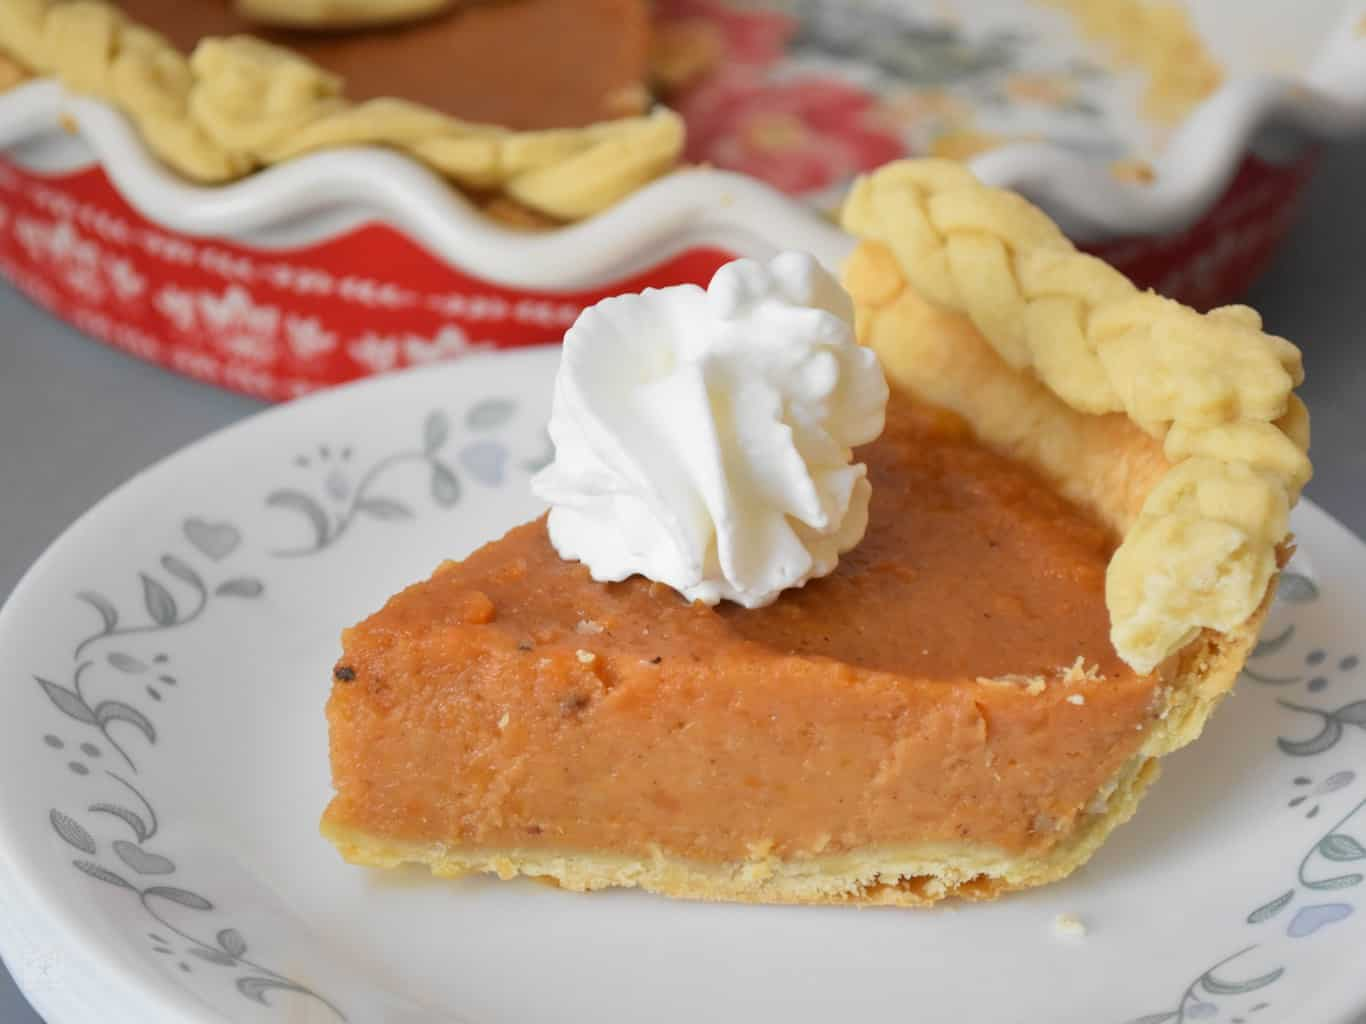 "<img src=""https://cdn.shortpixel.ai/client/q_glossy,ret_img,w_1366,h_1024/Sweet potato pie .jpg"" alt="" slice of Sweet potato pie with whipped cream "">"